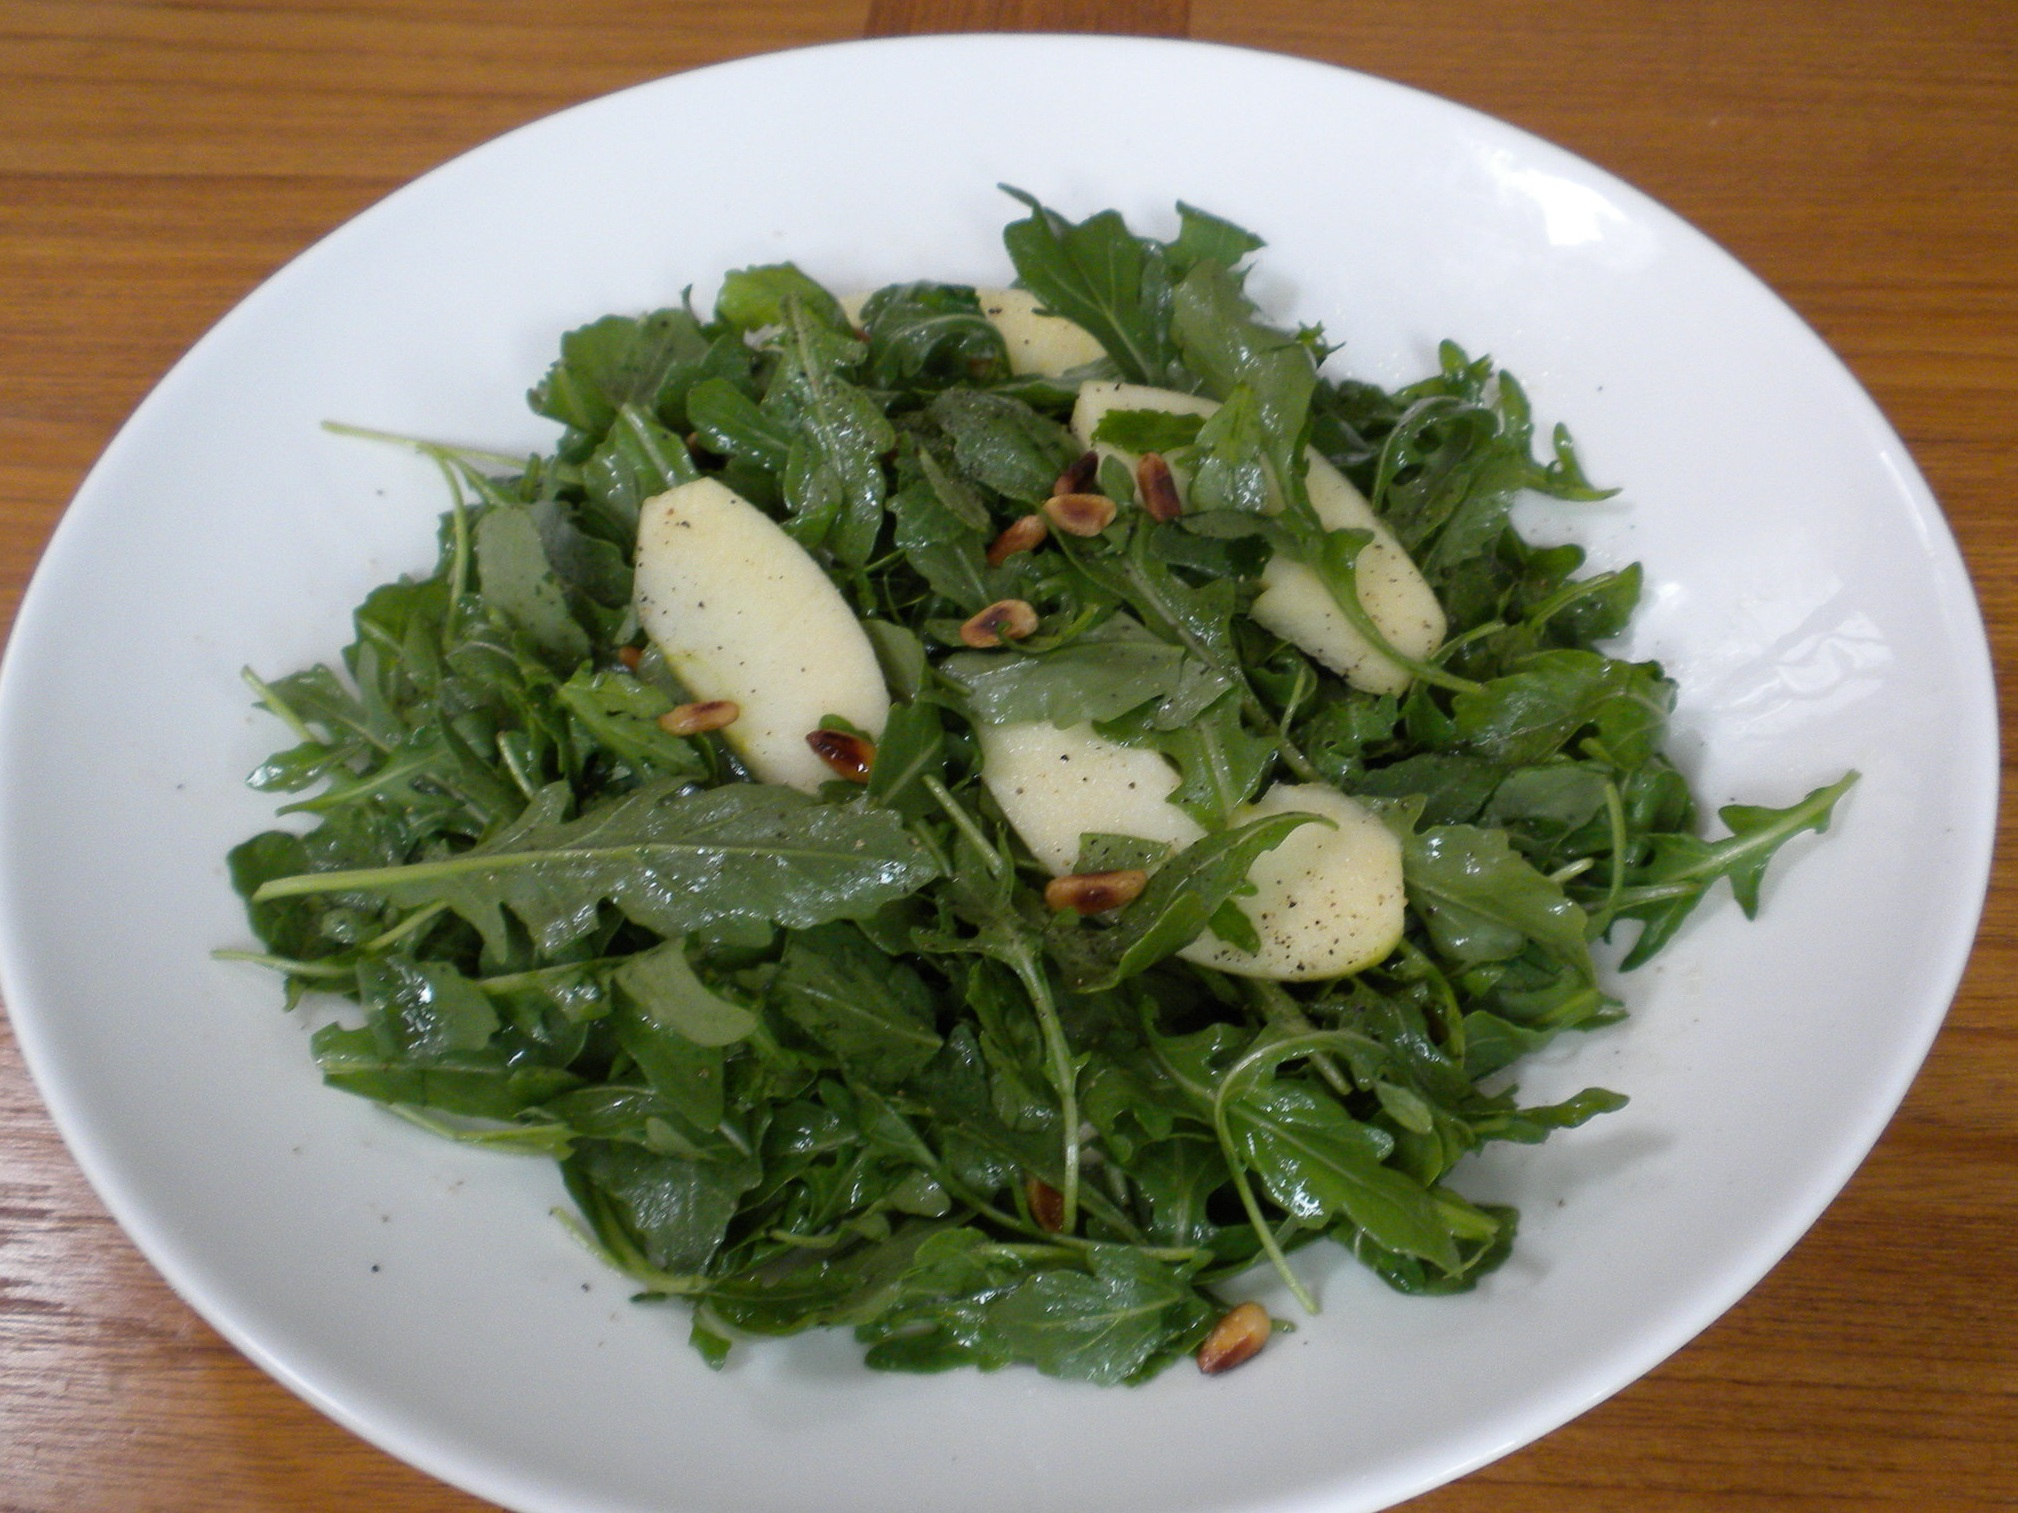 Arugula salad with pine nuts.  Rich in anti-inflammatory compounds and delicious!